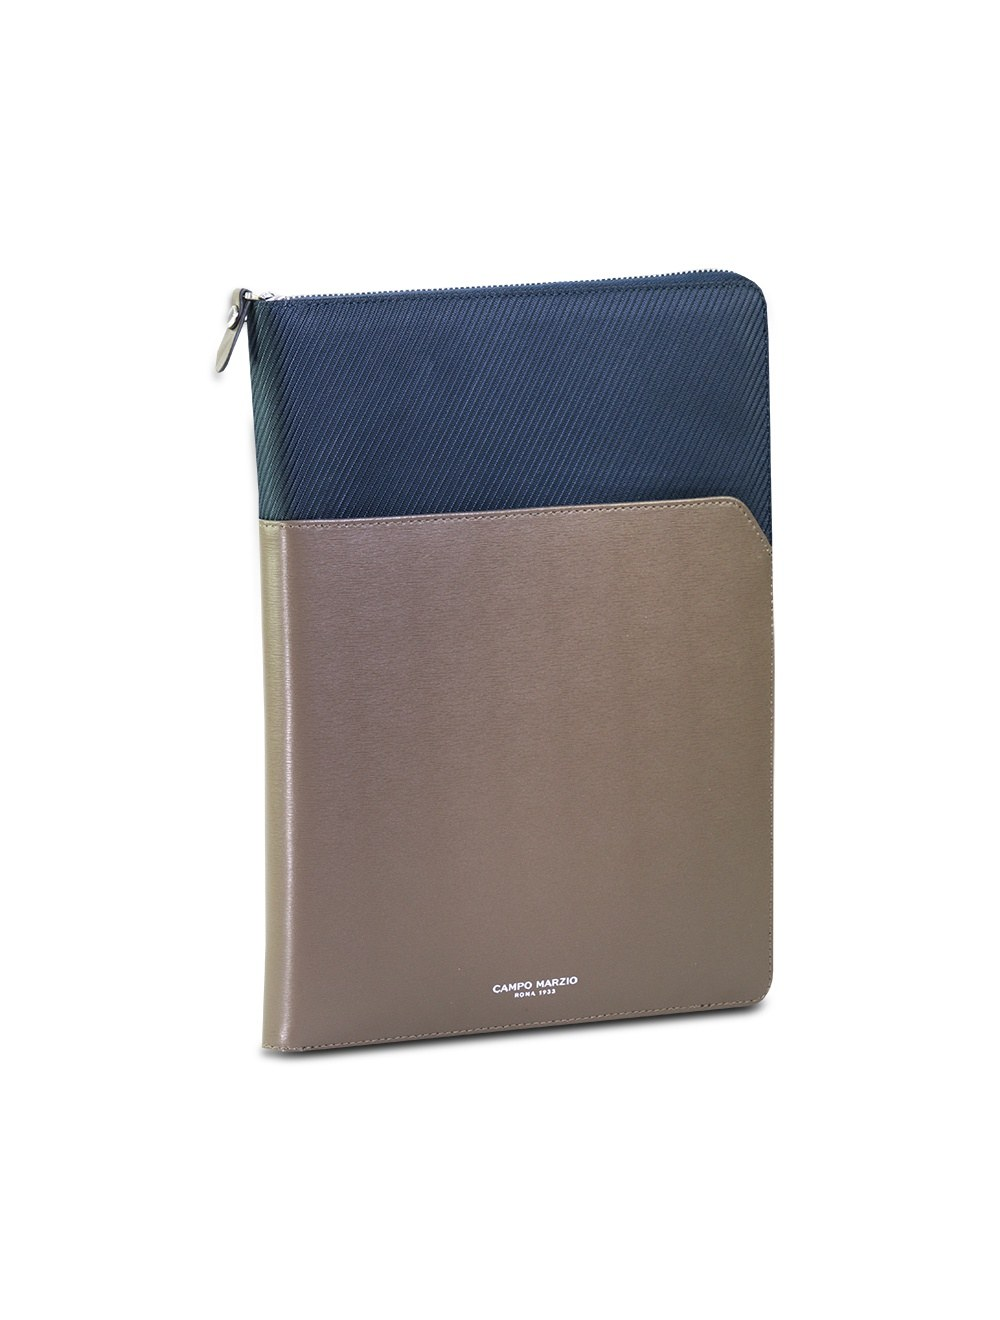 Document Holder 25*33,5*2,5 - Blue-Grey